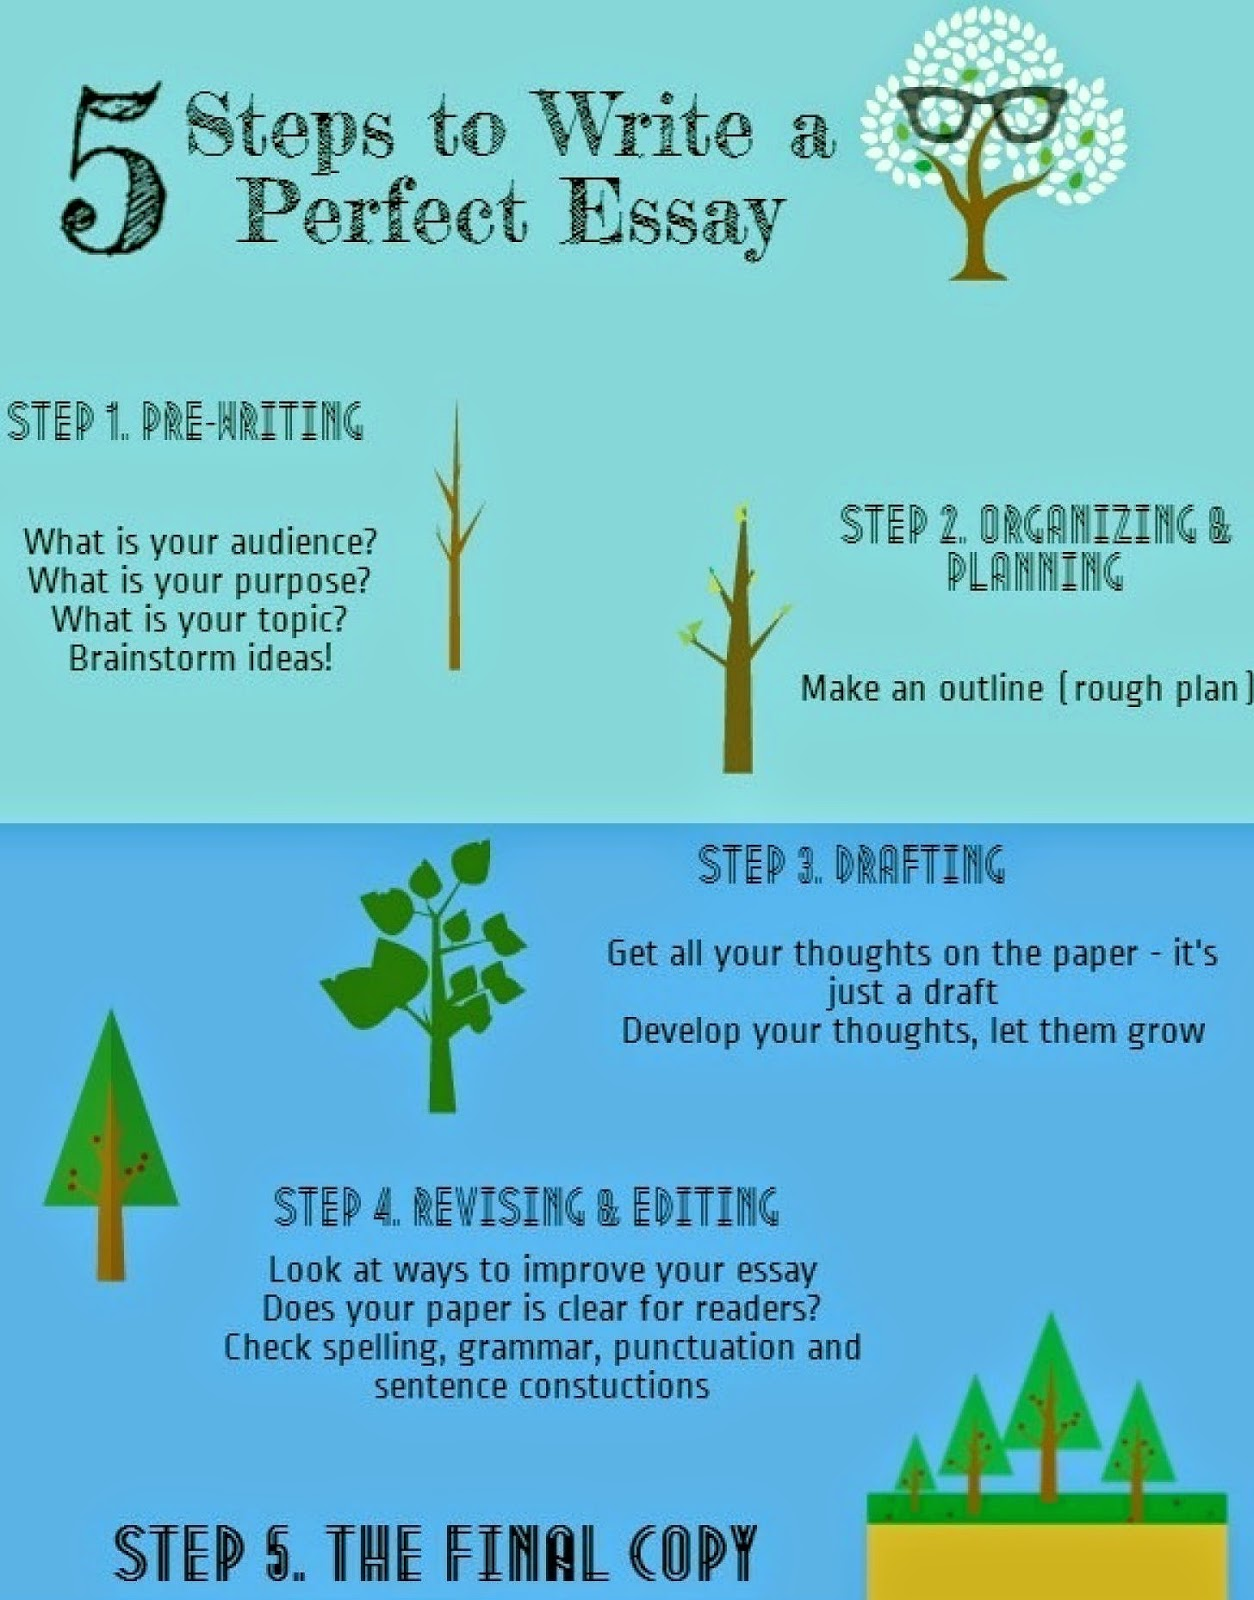 5 Steps to Write a Perfect Essay